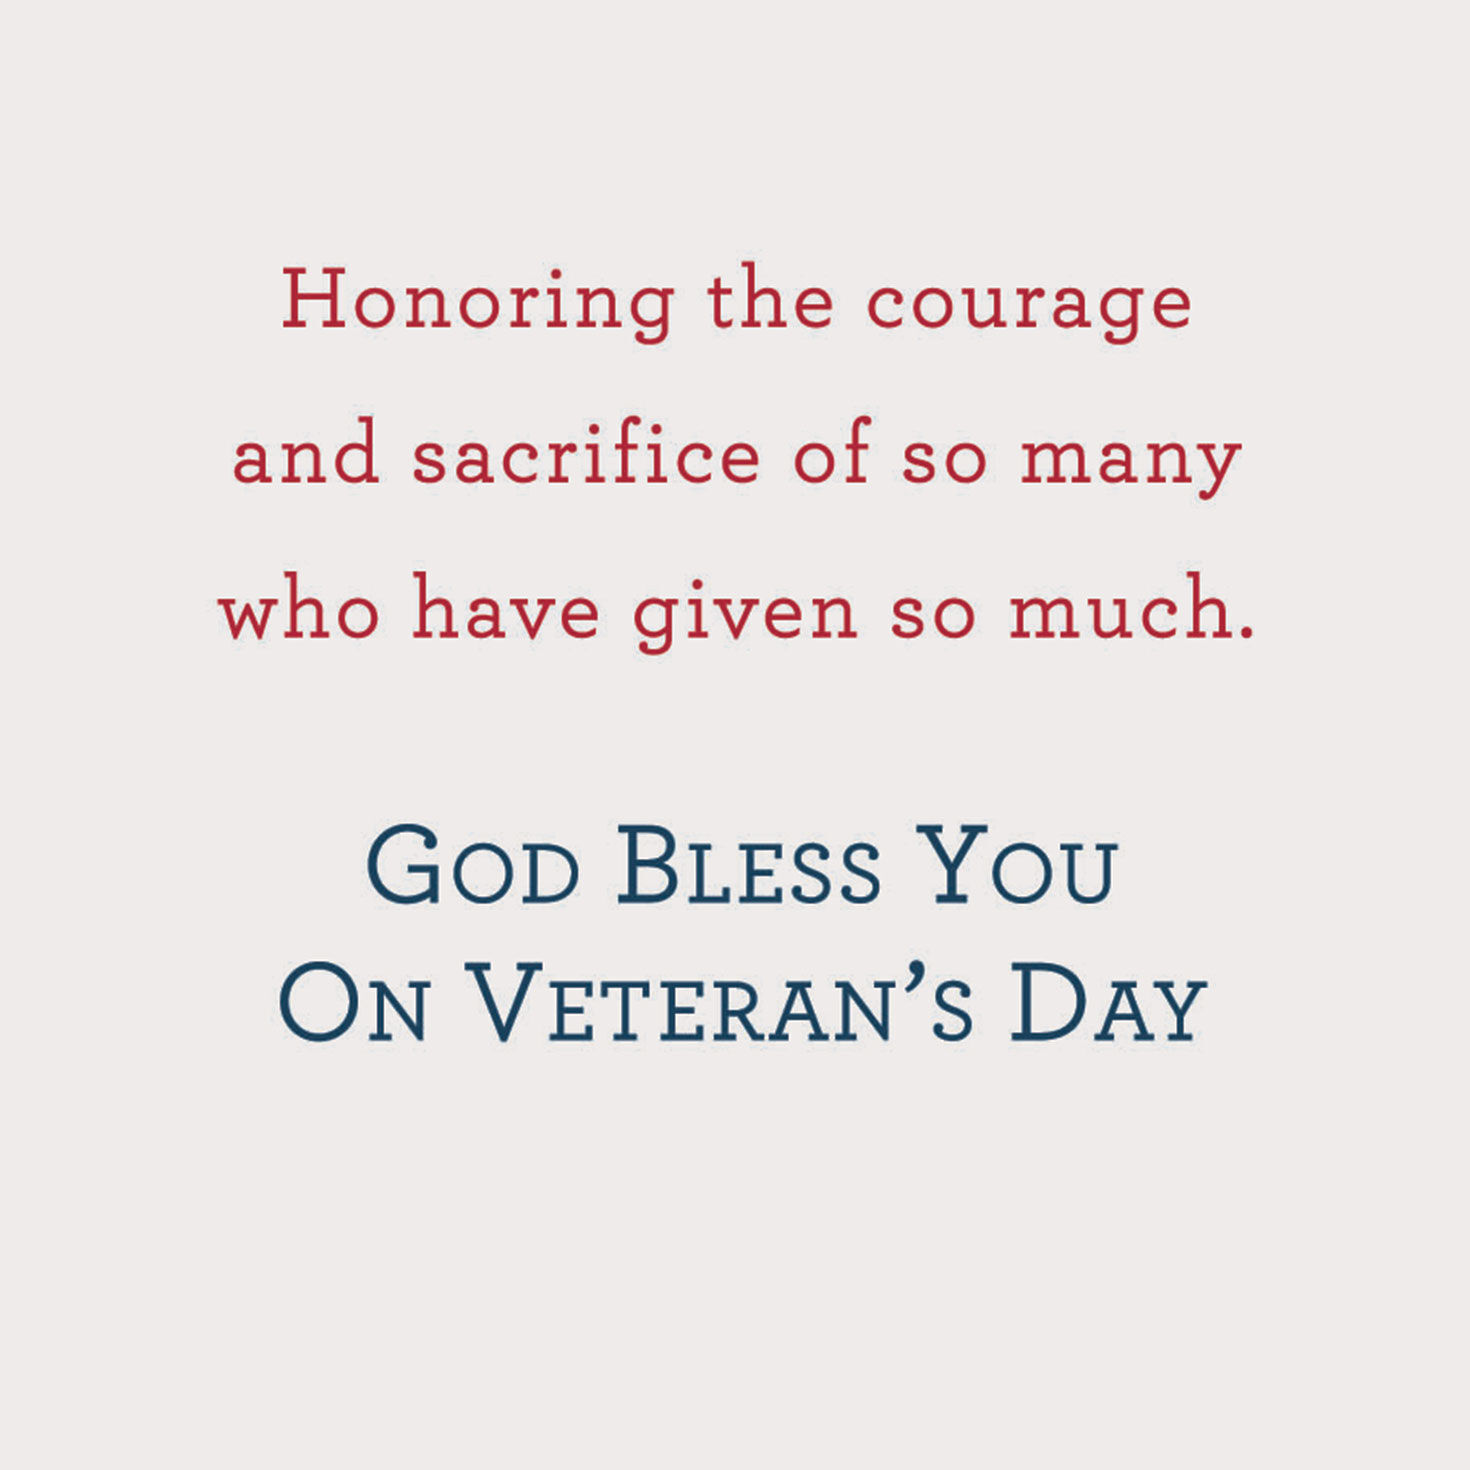 picture about Veterans Day Card Printable known as Veterans Working day Playing cards Hallmark